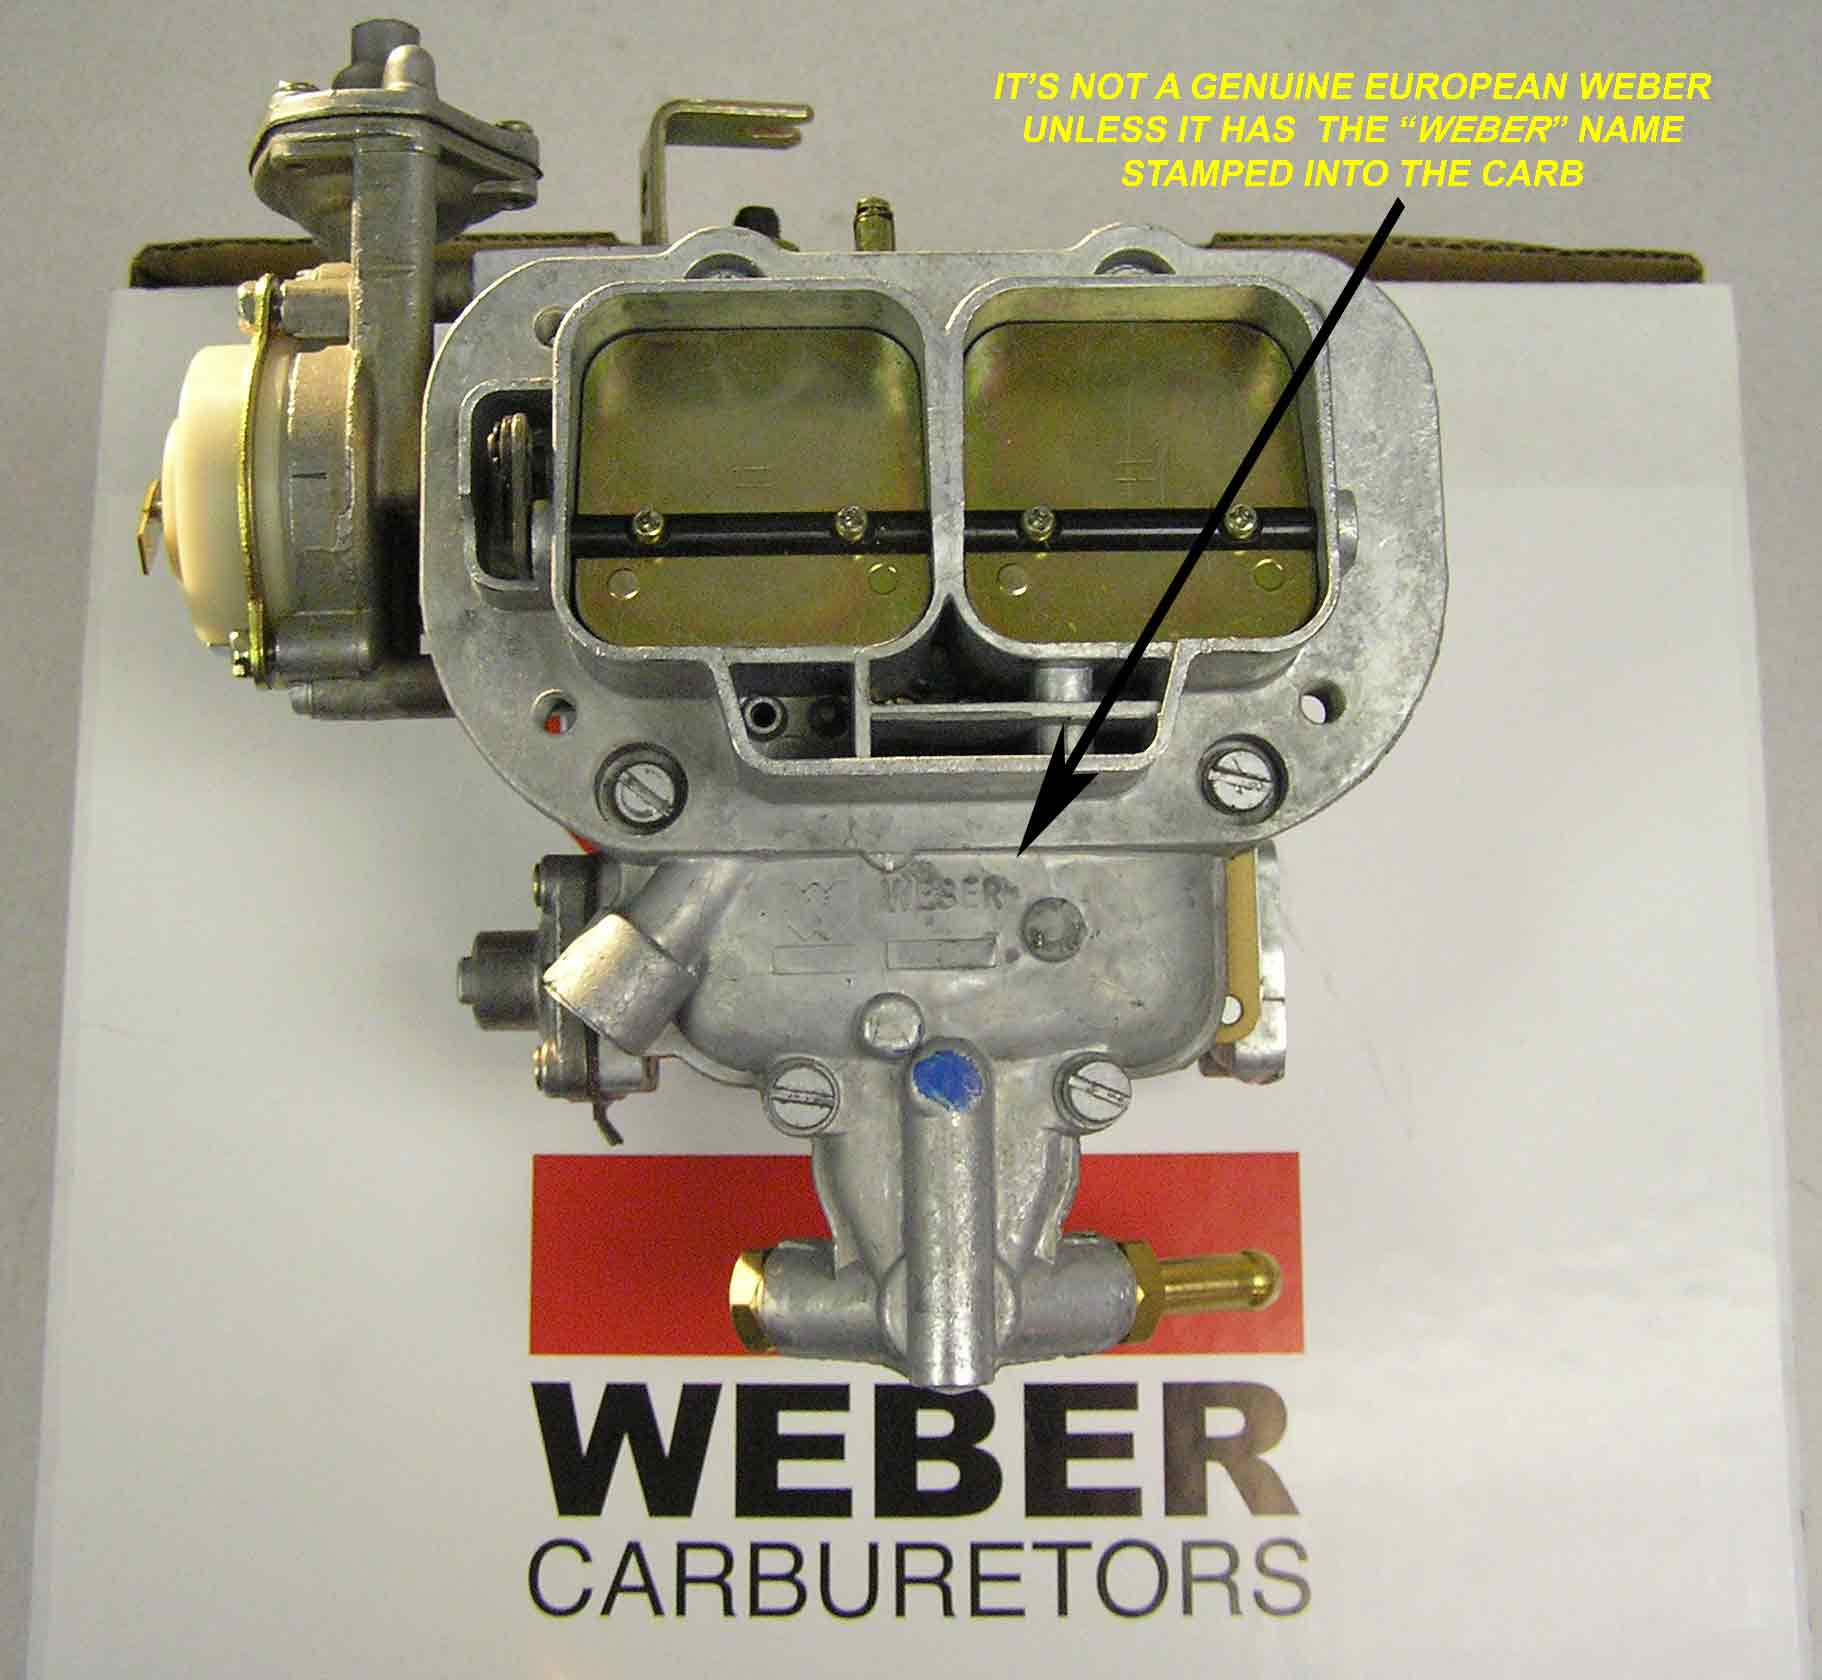 Details about Weber 32/36 DGV Carburetor new 32/36 Weber Carb Manual Choke  Carb